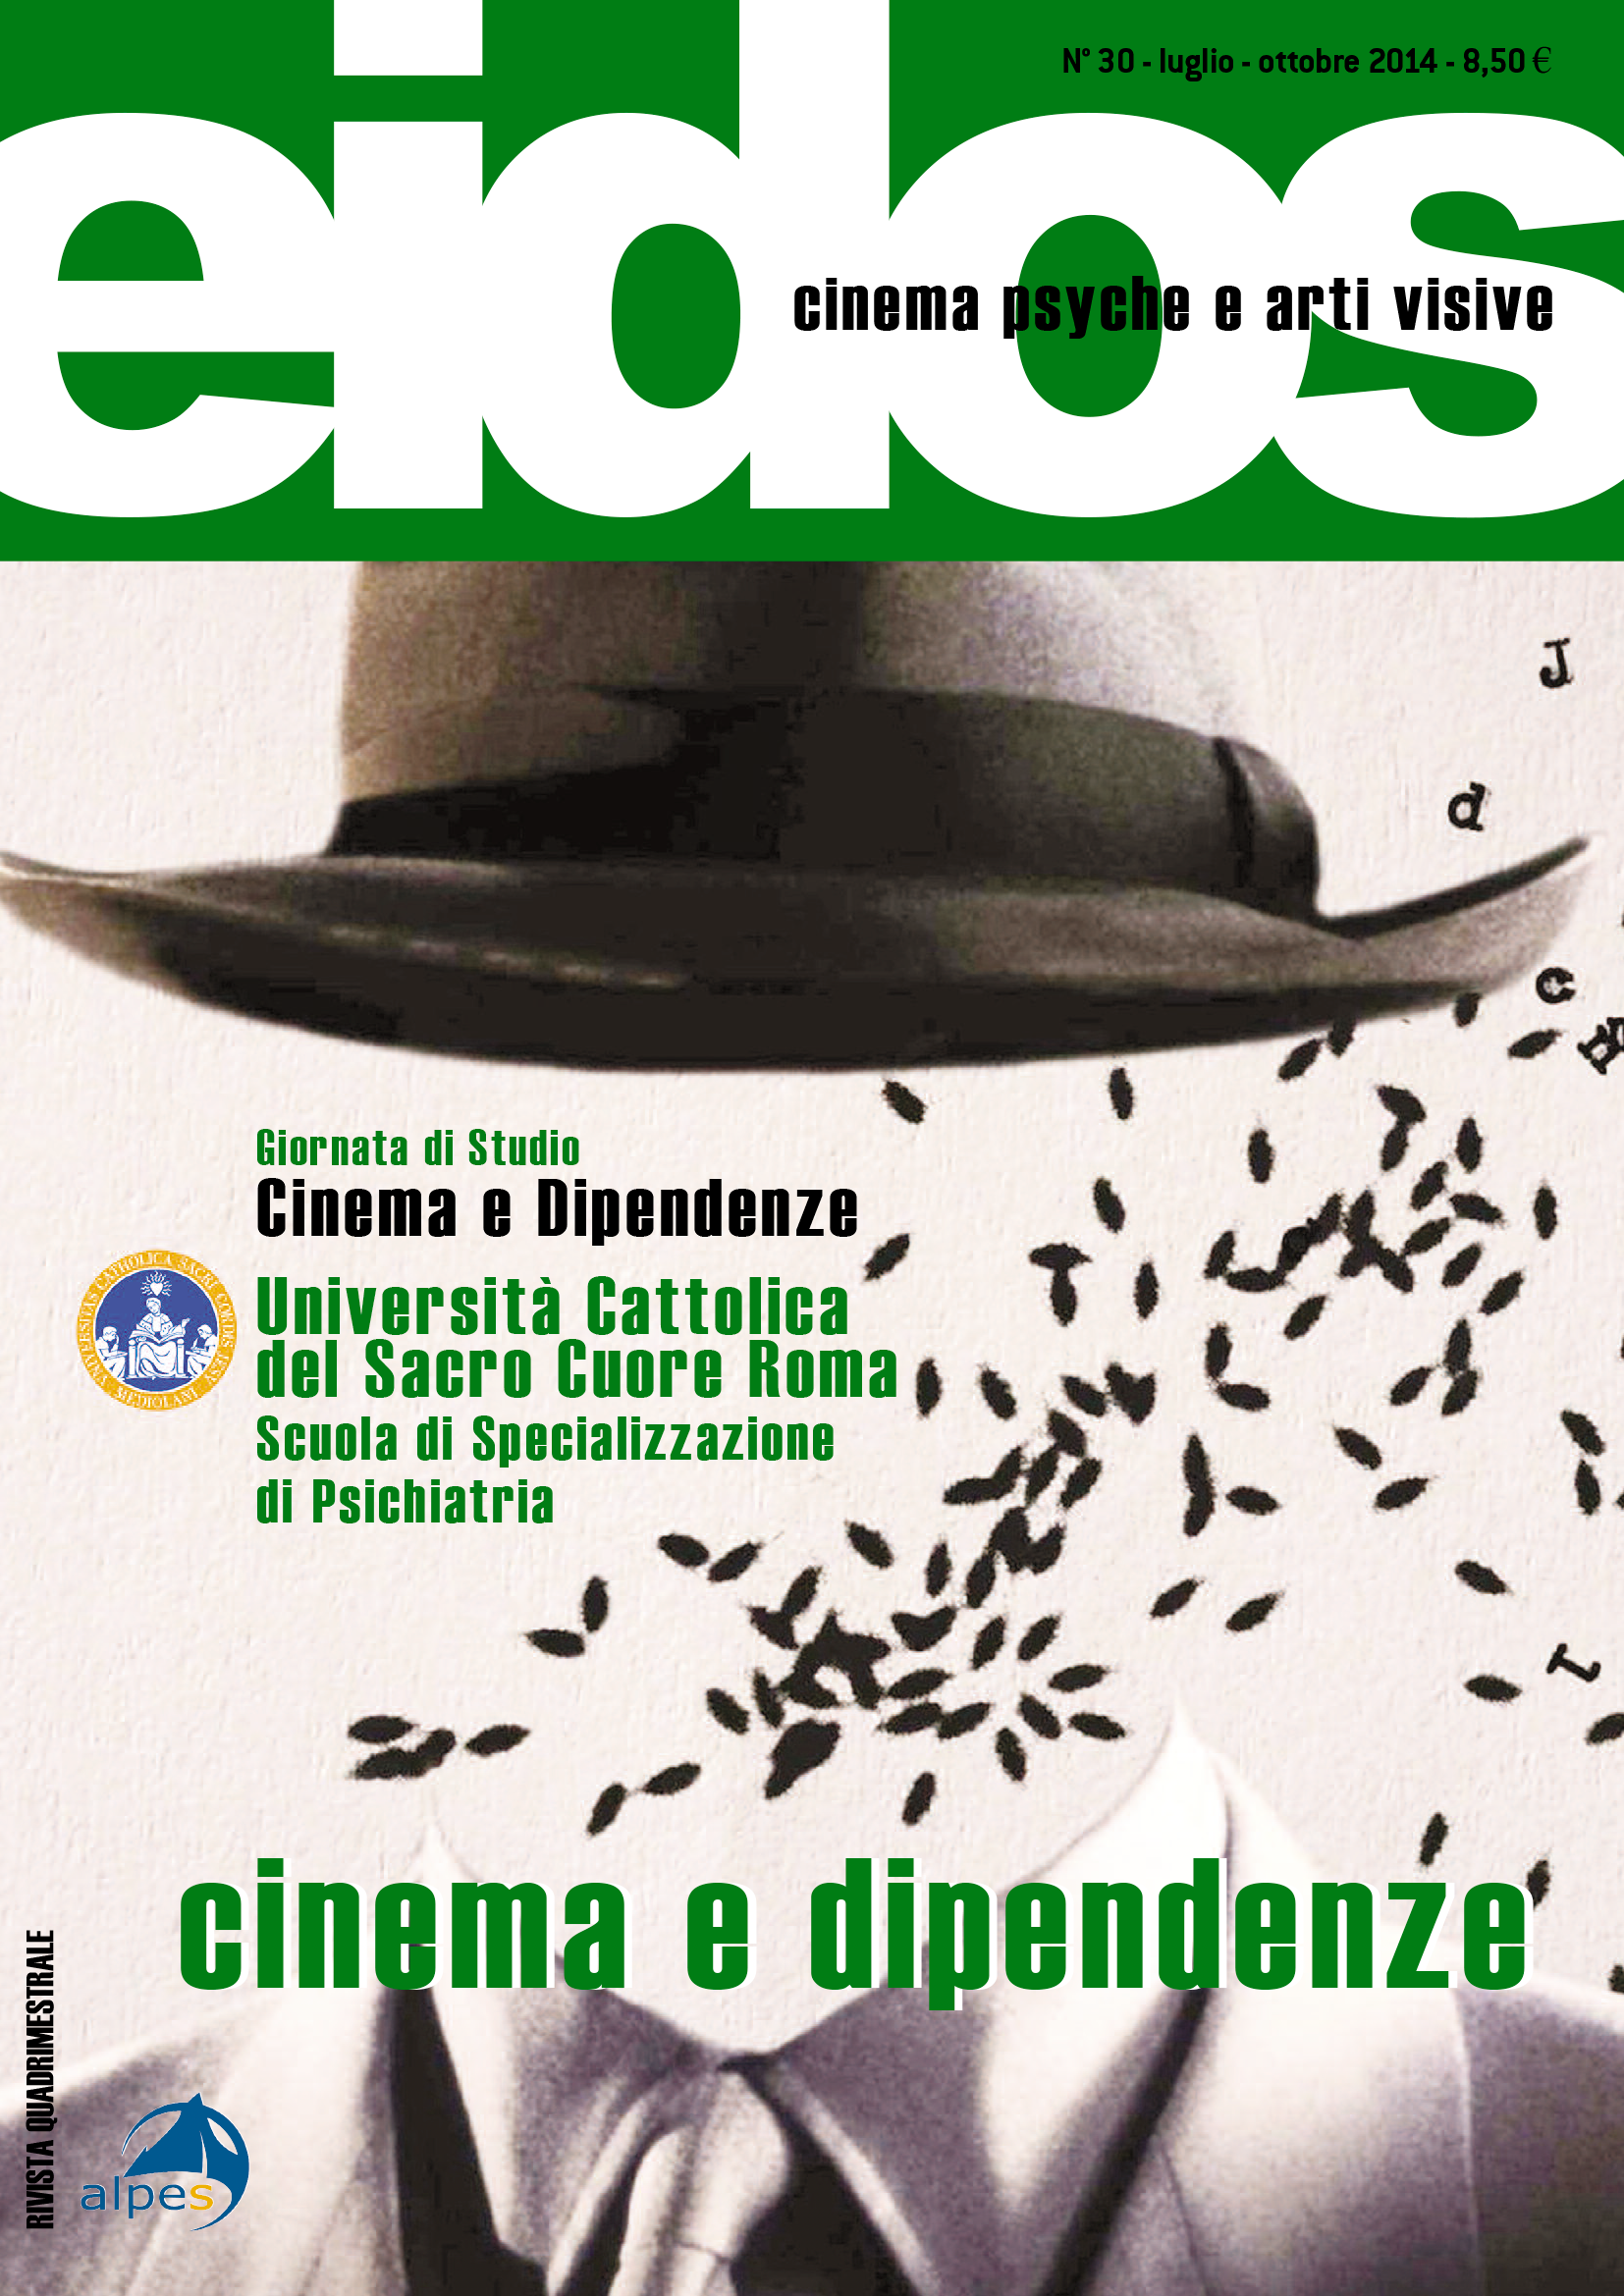 Eidos Cinema